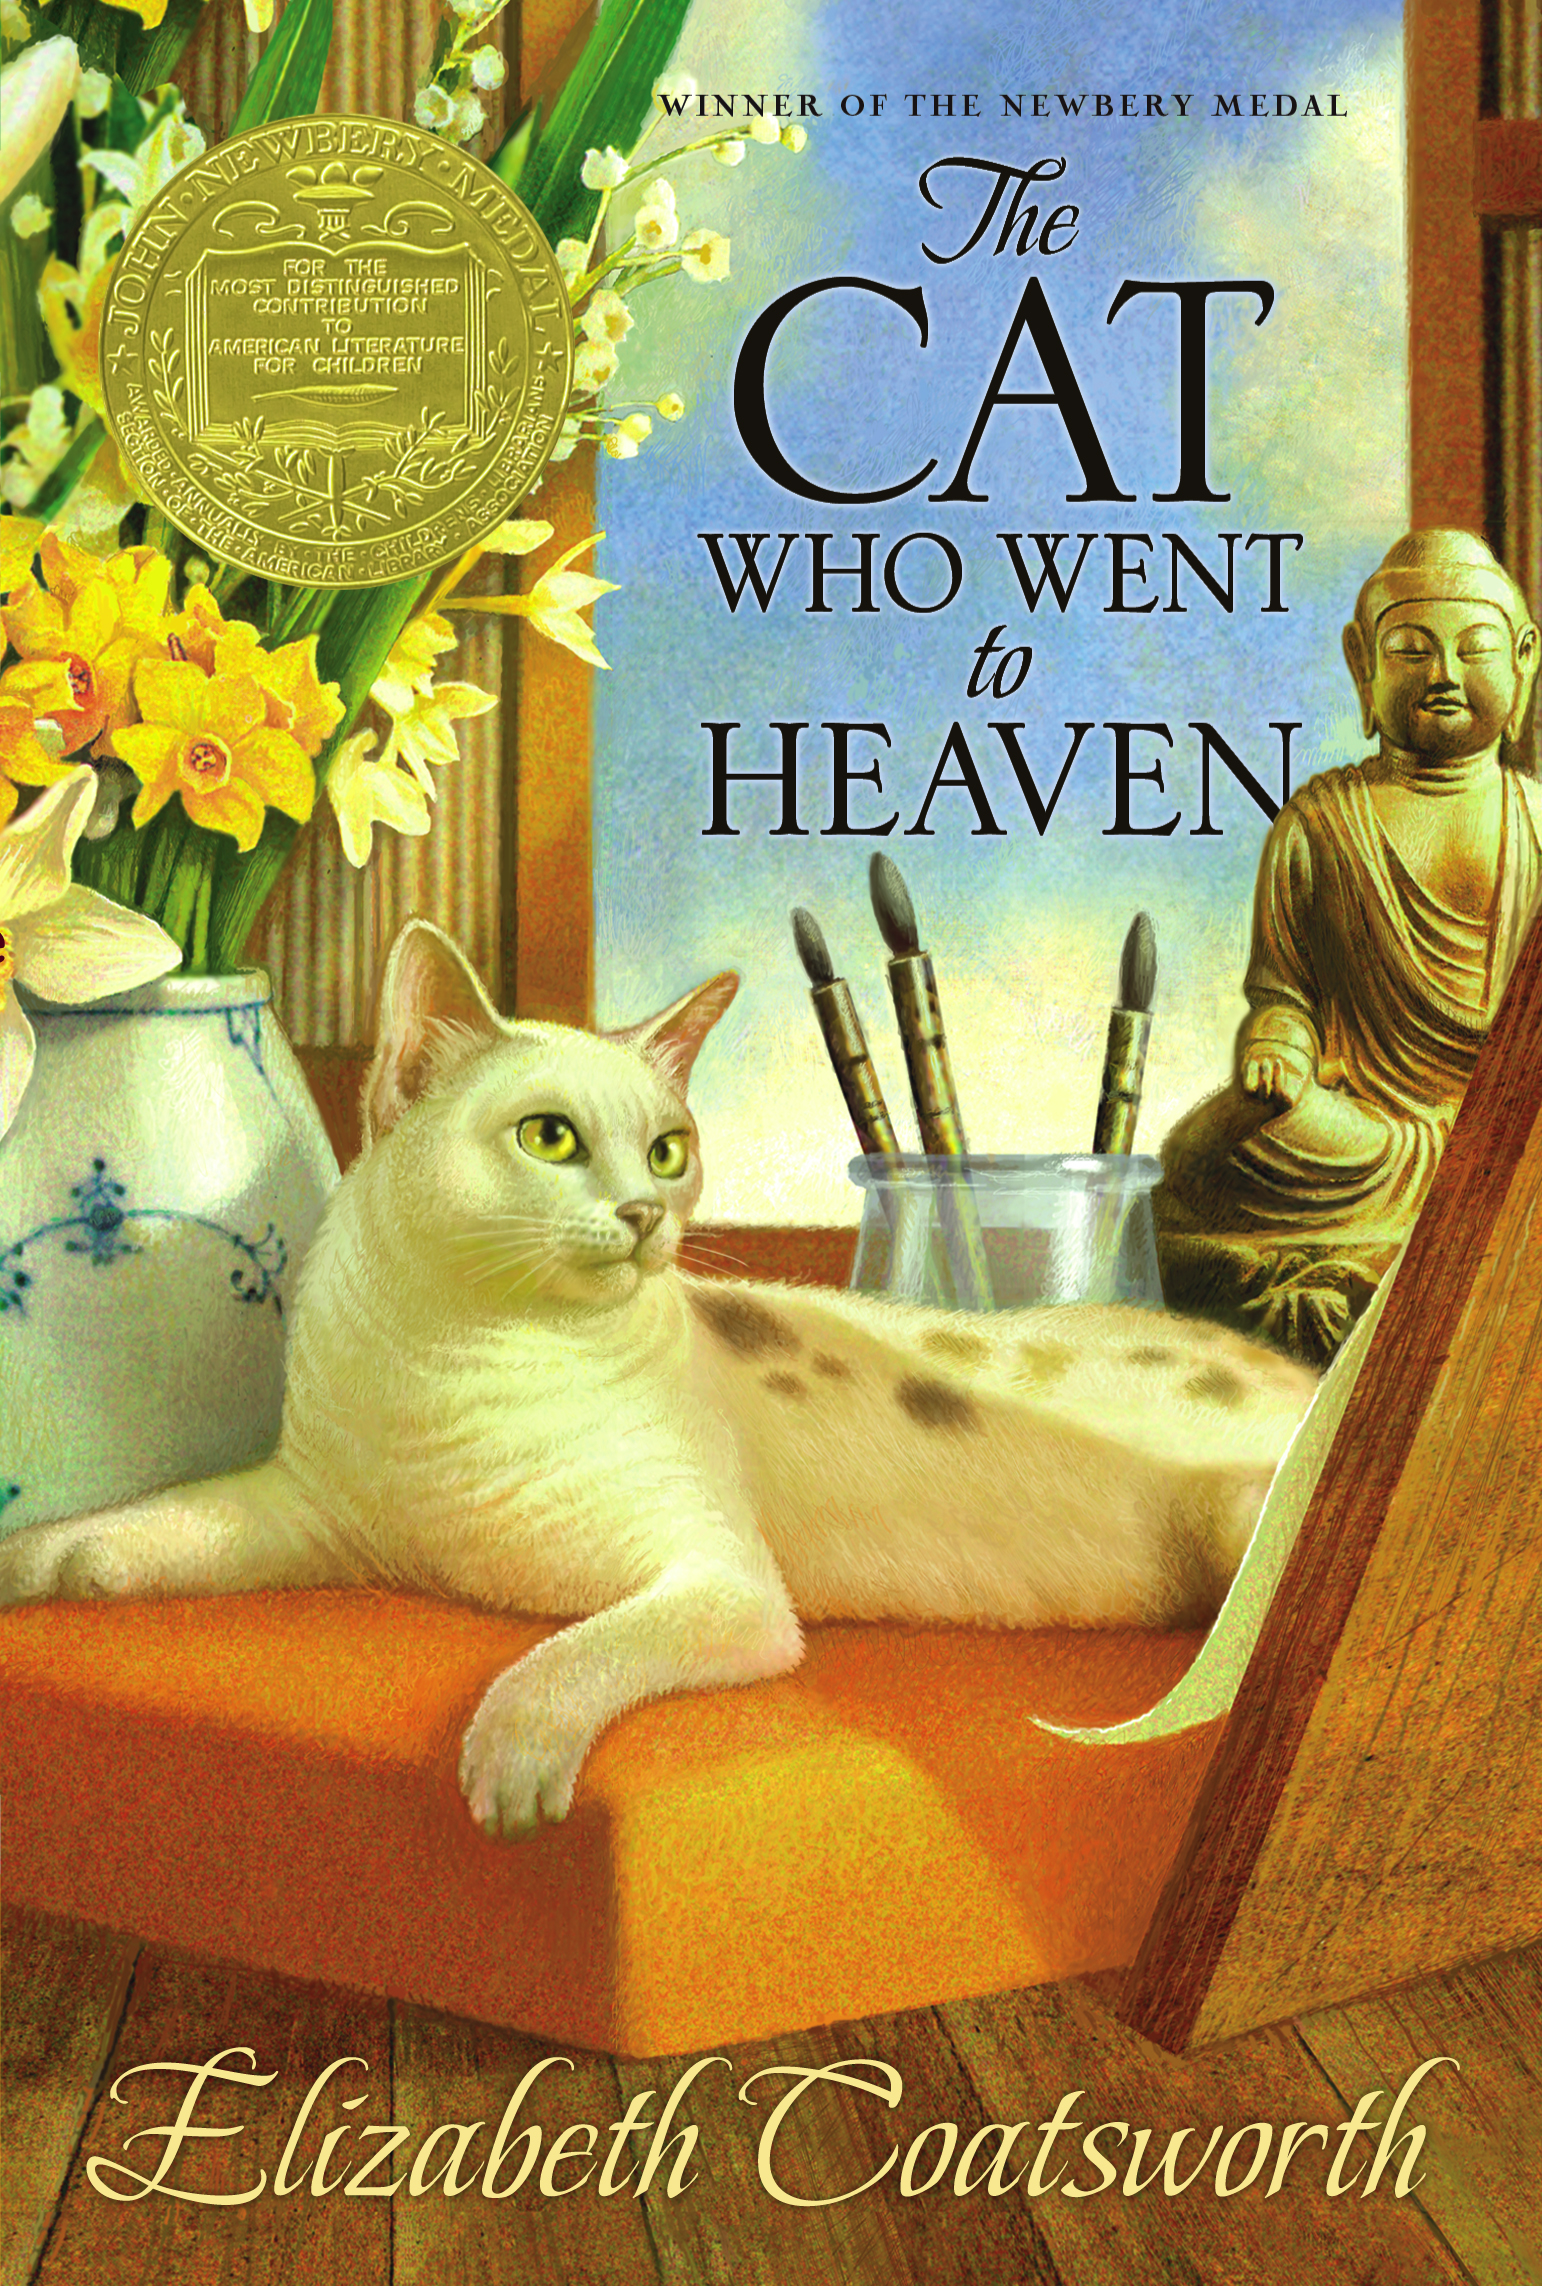 Coatsworth, Elizabeth - The Cat Who Went to Heaven